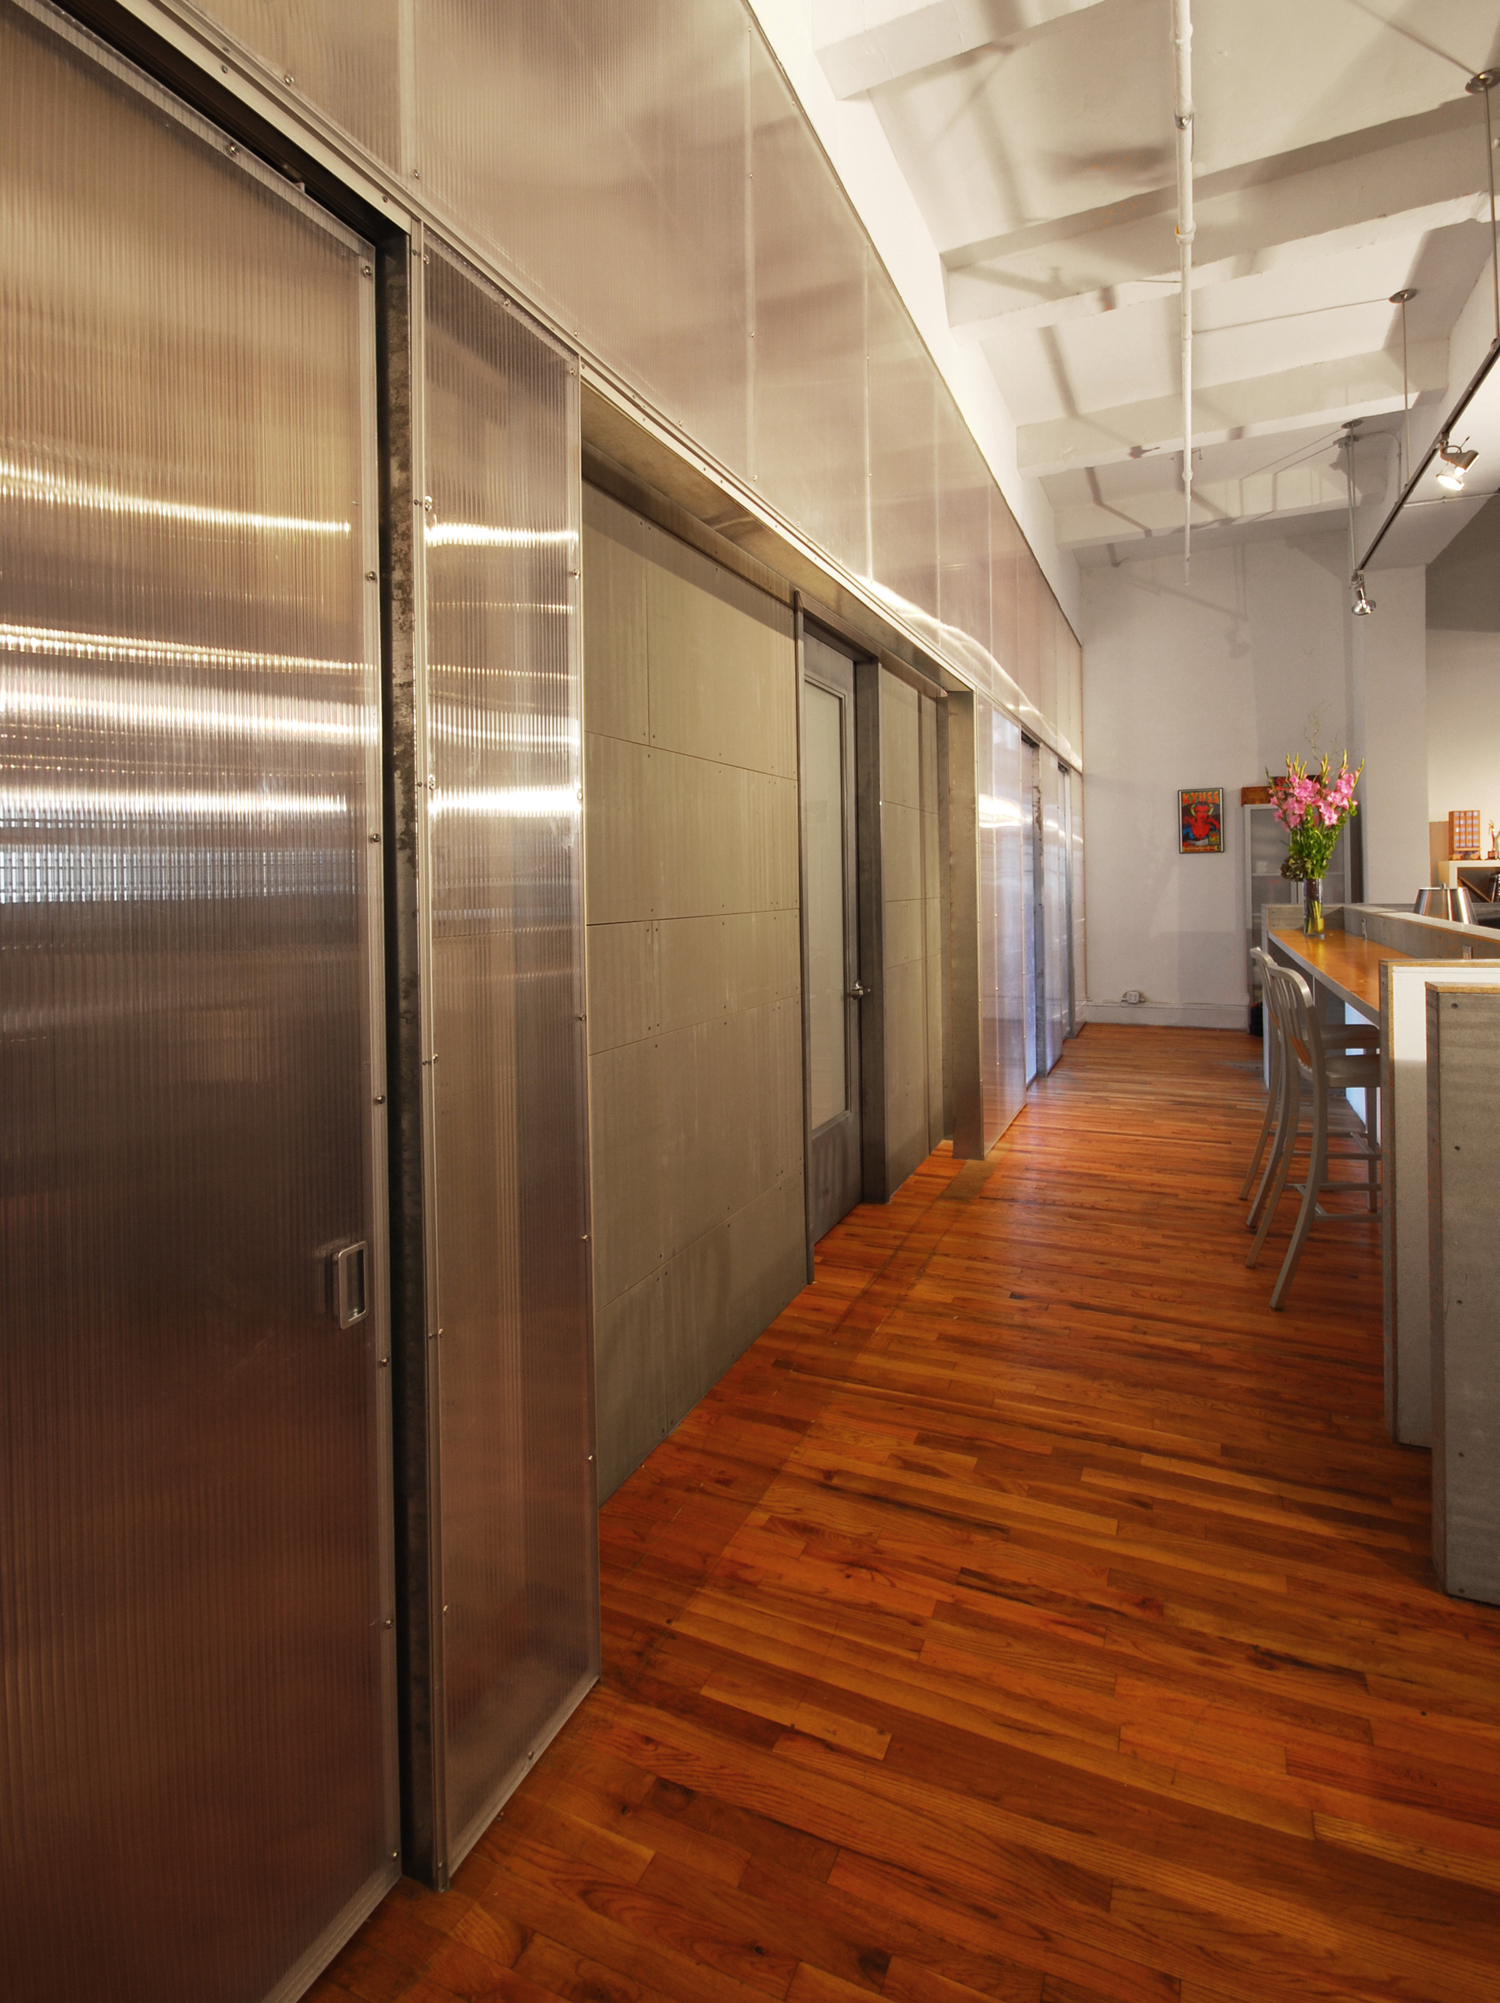 TRANSISTOR STUDIOS . New York, NY       This bi-coastal company specializes in post-production video editing for major market advertisers.  The New York office was undergoing the 3rd expansion of its existing space.  Previous additions were done haphazardly, without much consideration of efficient layout and positive staff interaction.  The main design exercise was to re-think the layout, incorporate the additional space the office was gaining, and establish a consistent identity.       Staff seating was consolidated and separated from client circulation, yet remains at the heart of the office between producers and directors.  This low budget project called for an innovative use of materials to help give the office an identity.  In lieu of a standard gypsum board partition wall, a translucent polycarbonate screen was created that gives privacy to the producers, while allowing natural light to filter into the staff area.          Cement board, typically used for backing ceramic tile, was utilized as a cladding material for the solid edit suite that appears to be floating behind the translucent panels.  This solution created an easily identifiable destination for their clients that was also provided the required sound isolation from the rest of the office.       The lounge was designed with simple, modern furnishings that are comfortable and clean, keeping with the office's newfound aesthetic.     All photos © STUDIOrobert jamieson